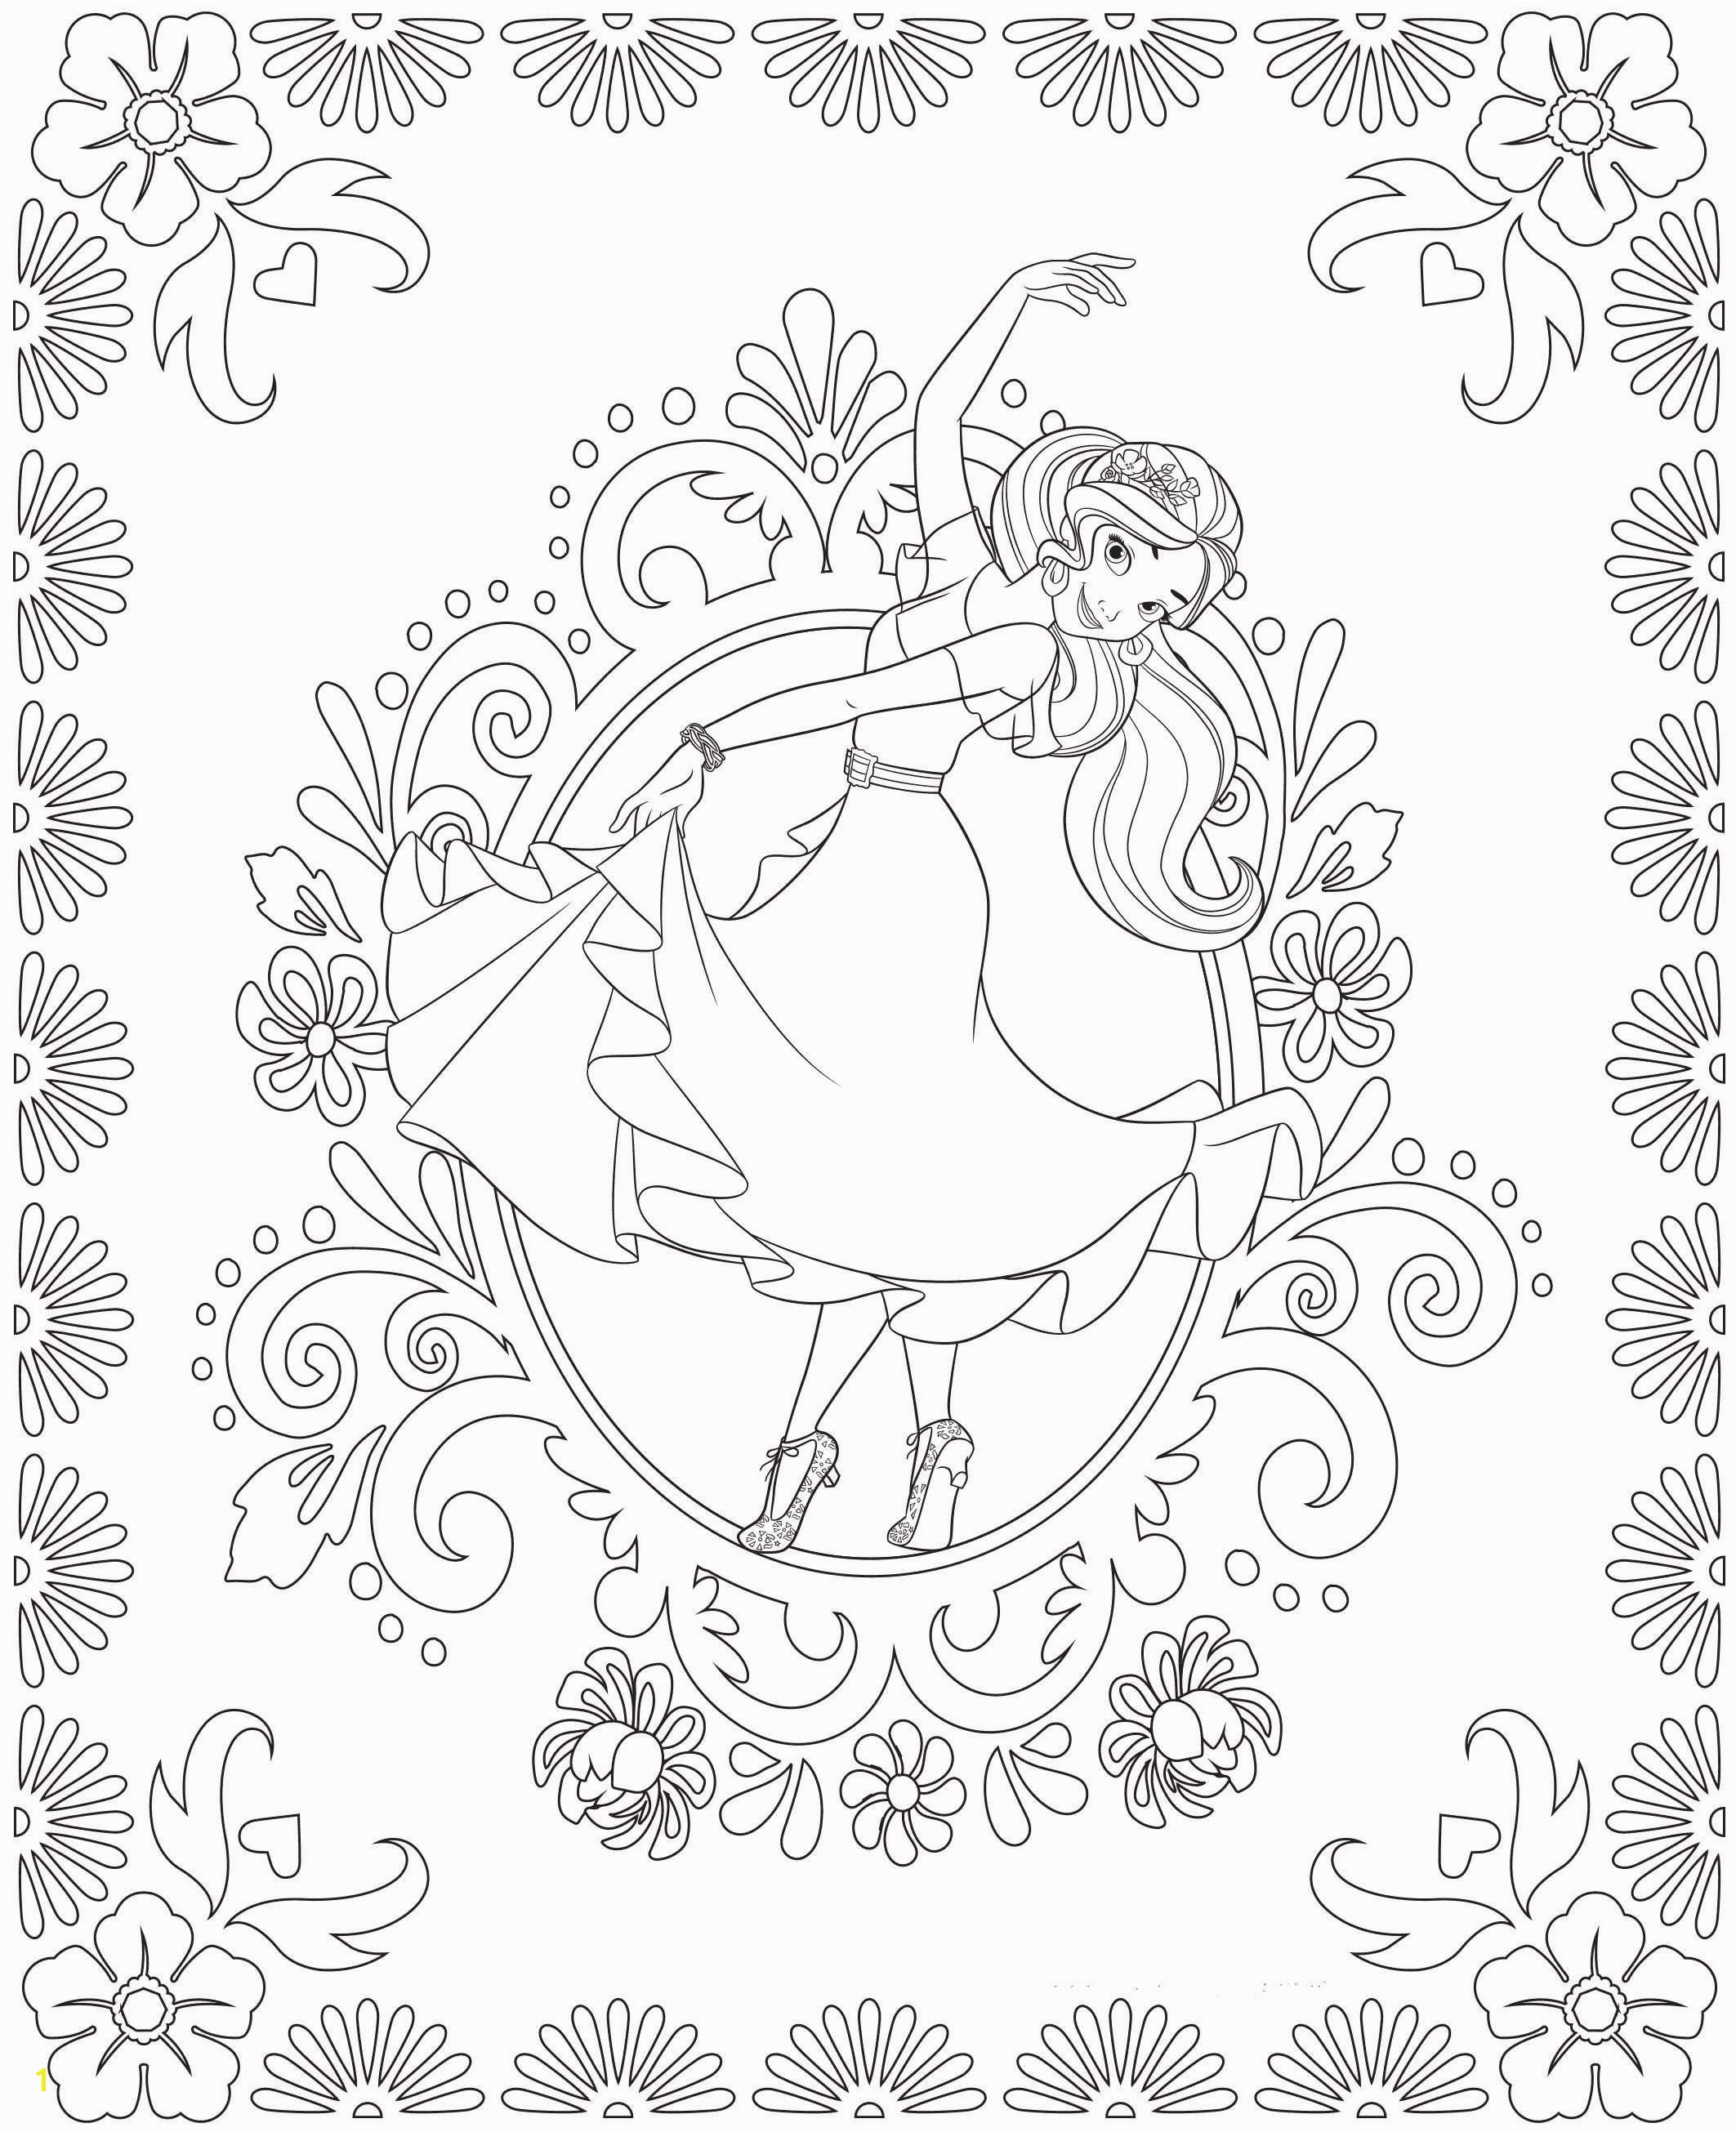 Conflict Resolution Coloring Pages Inspirational Sampler Princess Elena Coloring Page Lovely Un 7748 Unknown graph